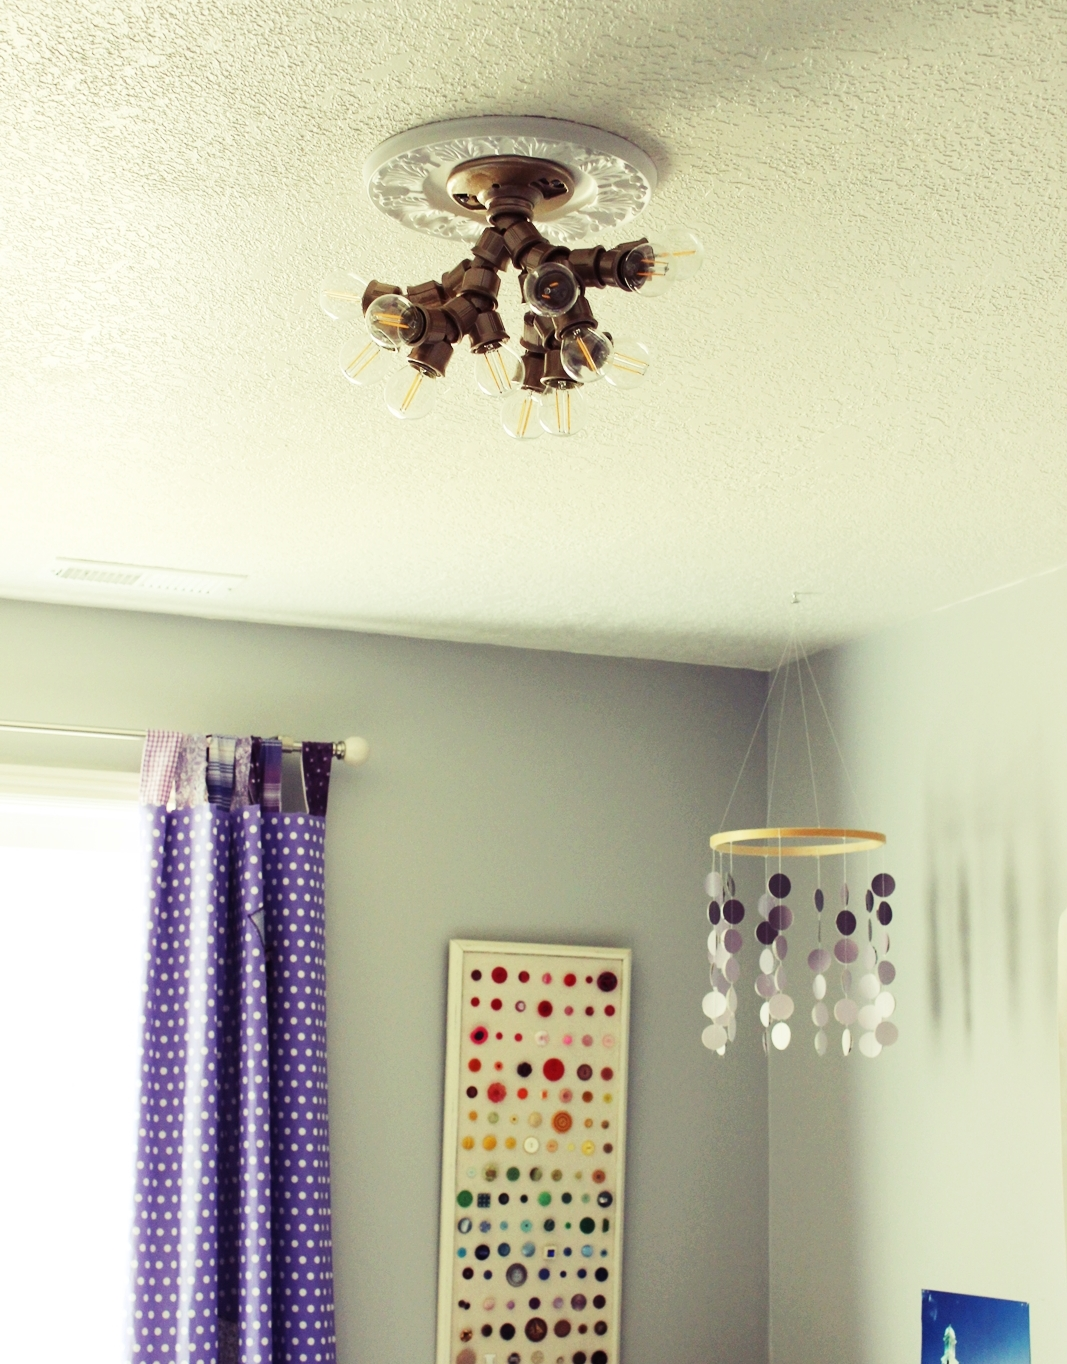 Diy ceiling light fixture made with branched out socket splitters step 10 install bulbs and turn it on aloadofball Choice Image